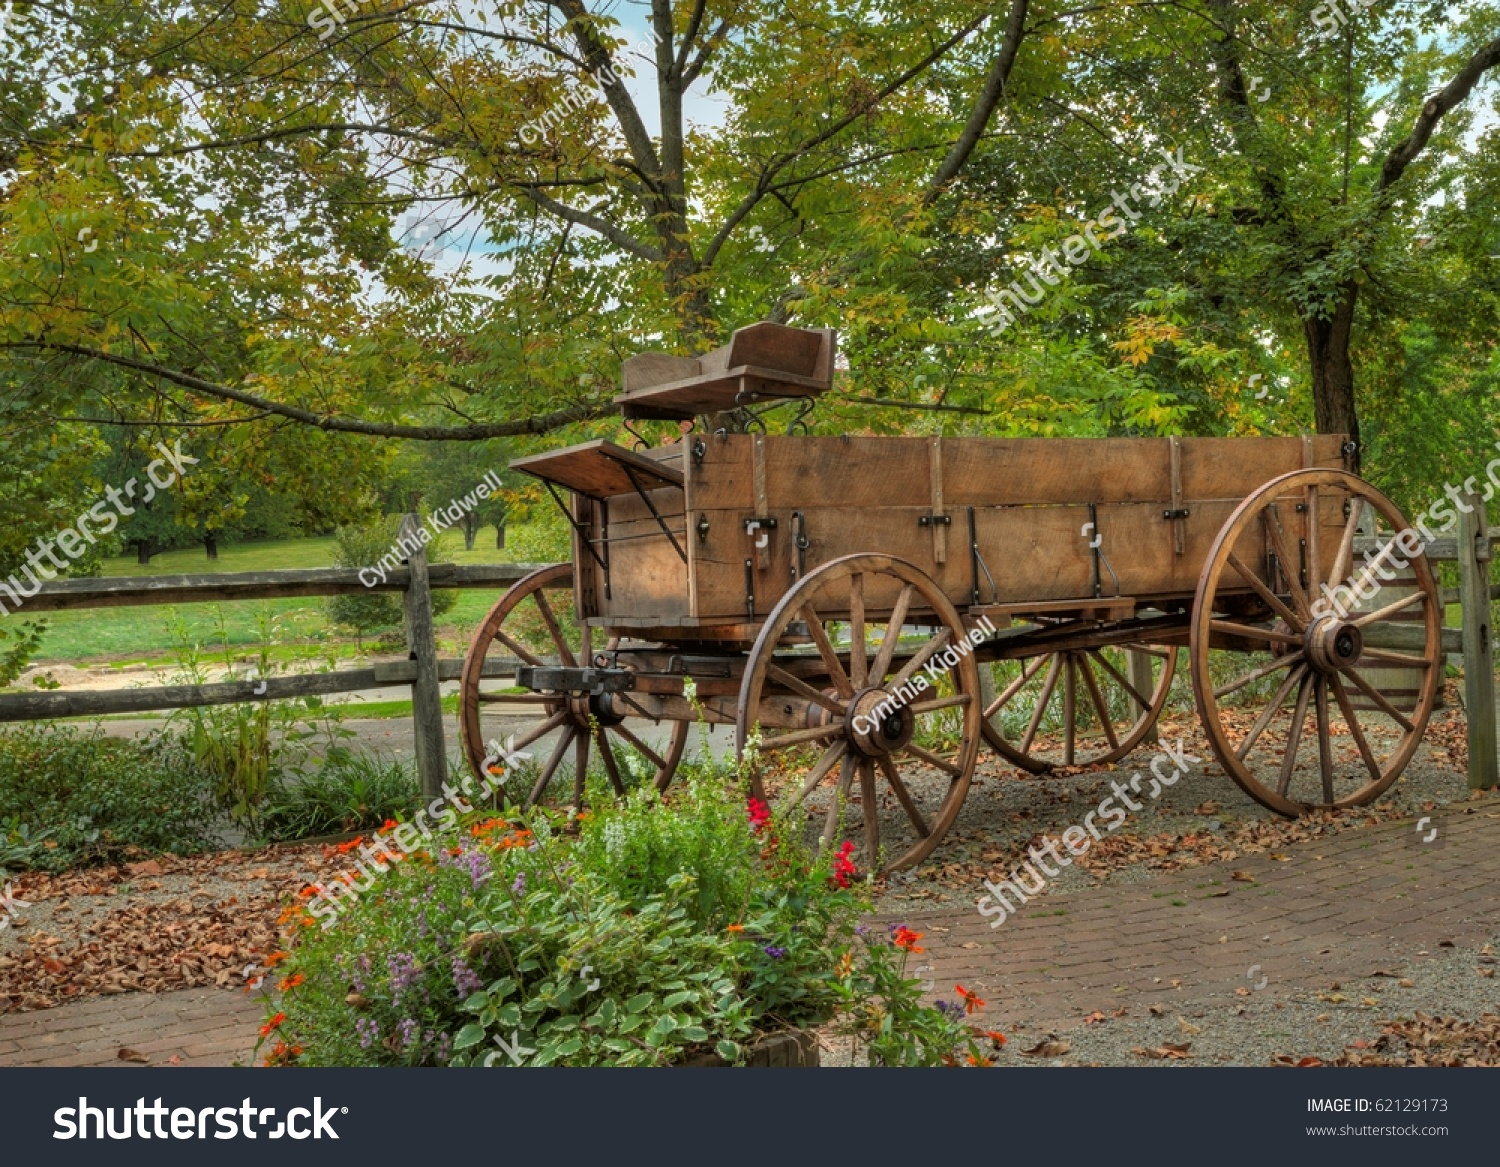 old wooden cart standing in the sun | EZ Canvas